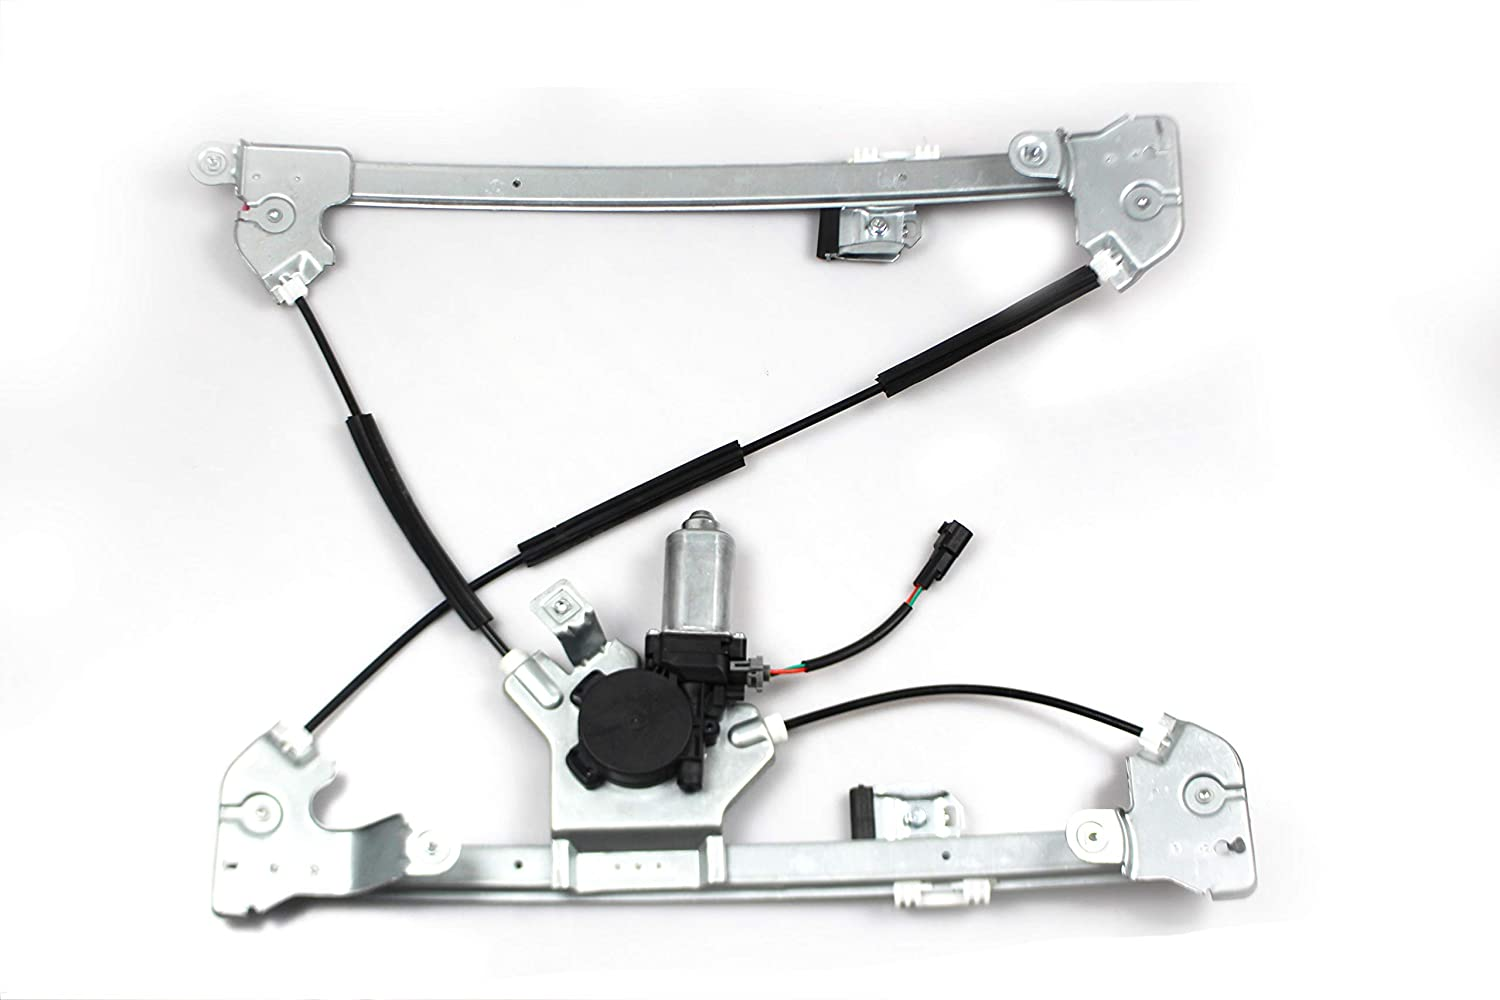 BOXI Front Right Passenger Side Power Window Regulator with Motor for 2004-2008 Ford F-150 Standard/Crew Cab Pickup Model with 43.5' Wide Doors Model Only / 2006-2008 Lincoln Mark LT 4L3Z1523200BA ShangHai BOXI Auto Parts Co. Ltd.